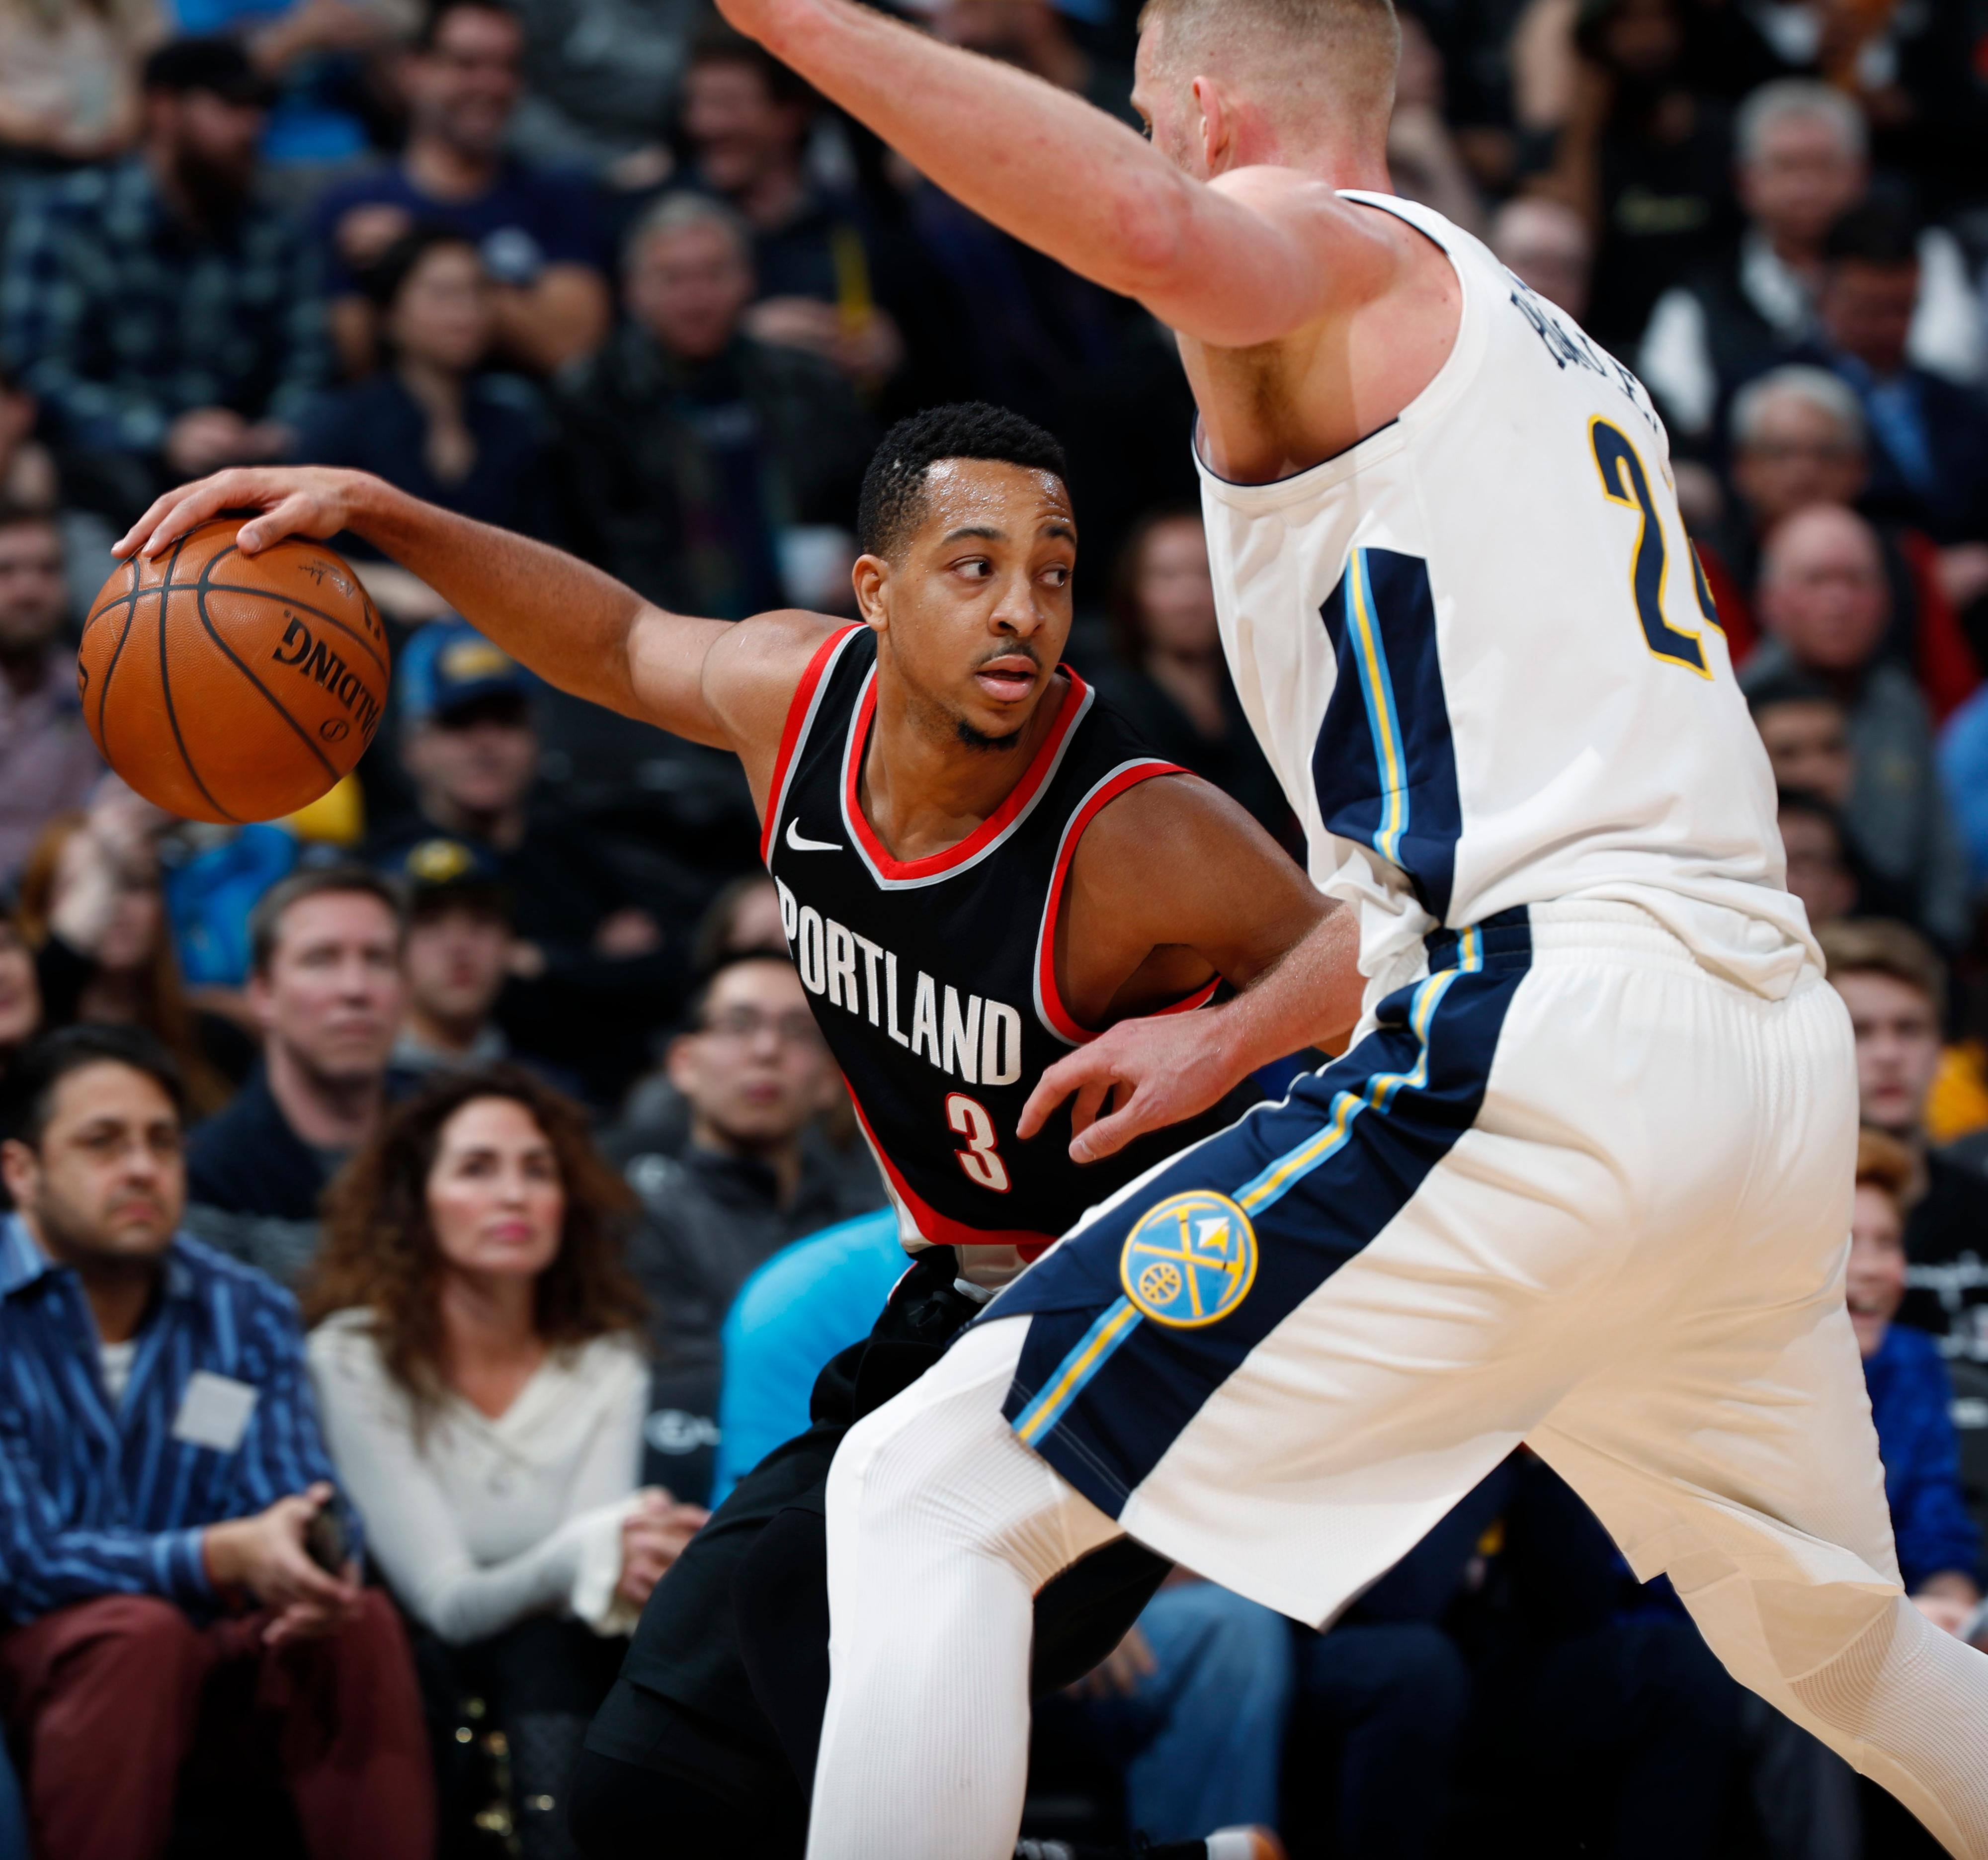 Portland Trail Blazers guard CJ McCollum, left, tries to drive past Denver Nuggets center Mason Plumlee in the second half of an NBA basketball game Monday, Jan. 22, 2018, in Denver. The Nuggets 104-101. (AP Photo/David Zalubowski)